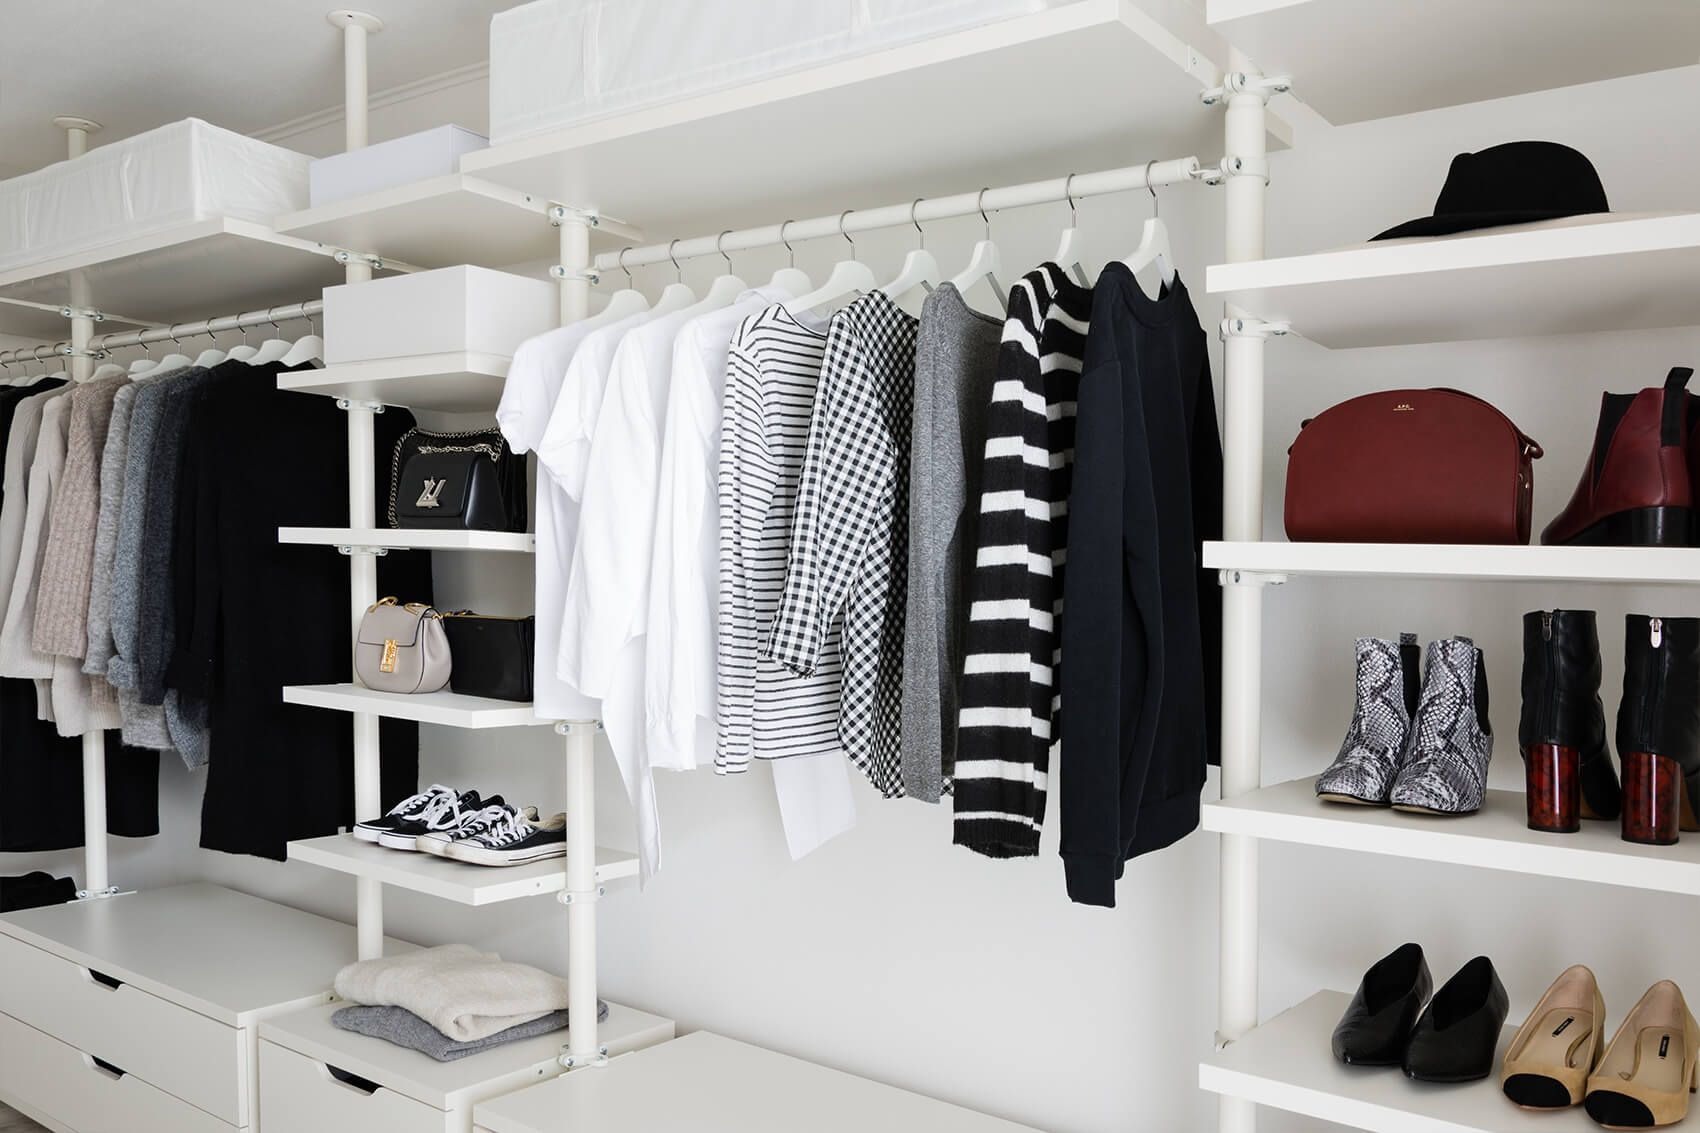 ankleidezimmer offener kleiderschrank ikea stolmen closet goals interior. Black Bedroom Furniture Sets. Home Design Ideas